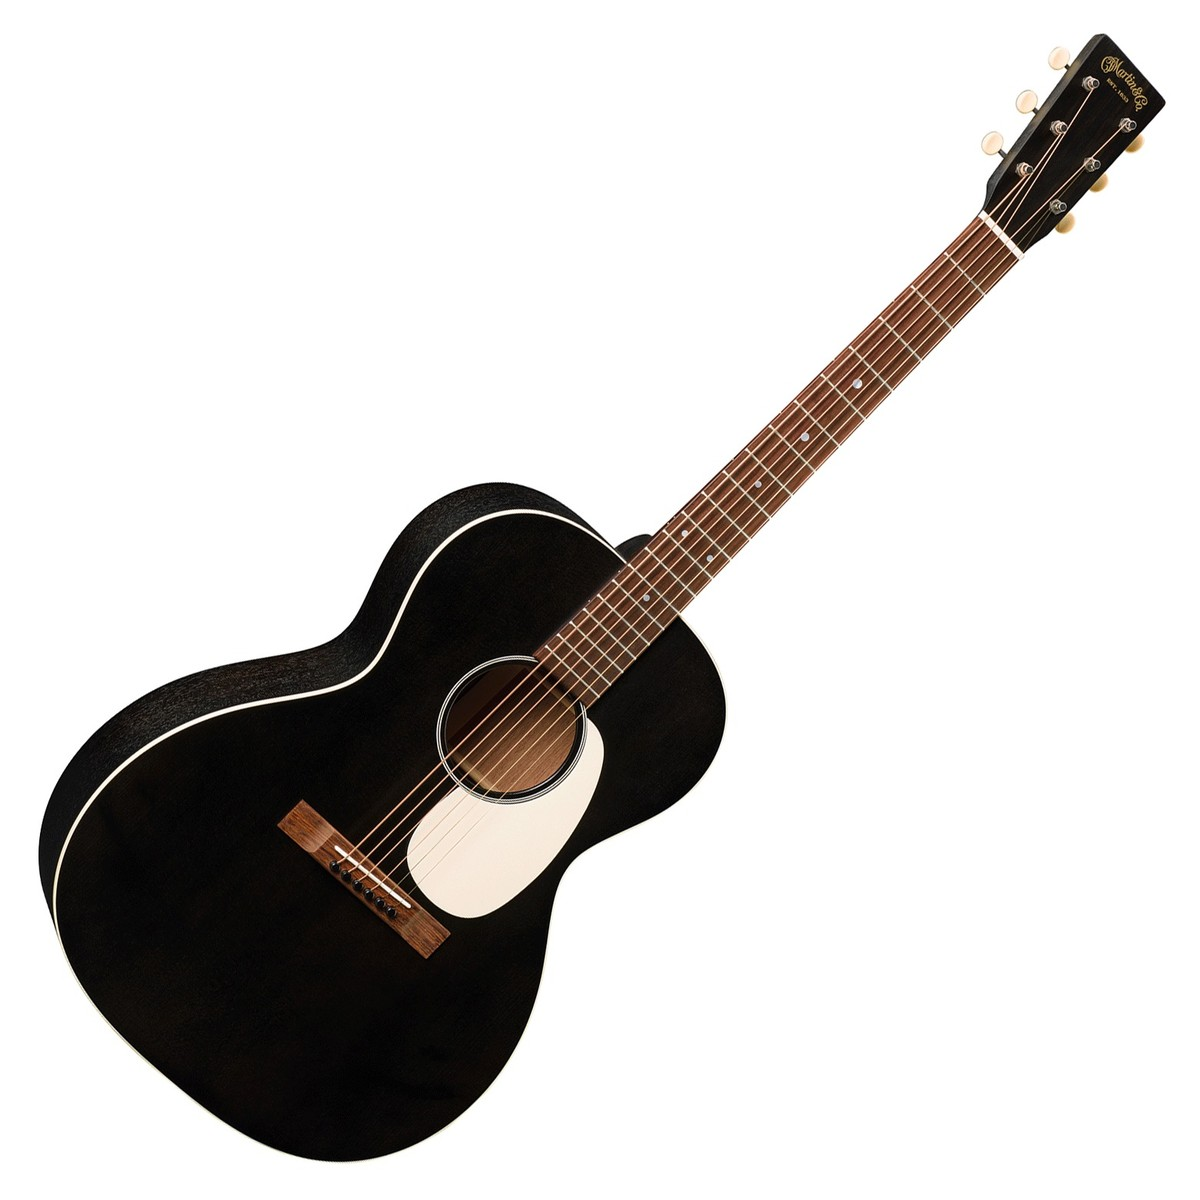 Click to view product details and reviews for Martin 00l 17e Acoustic Guitar Black Smoke.